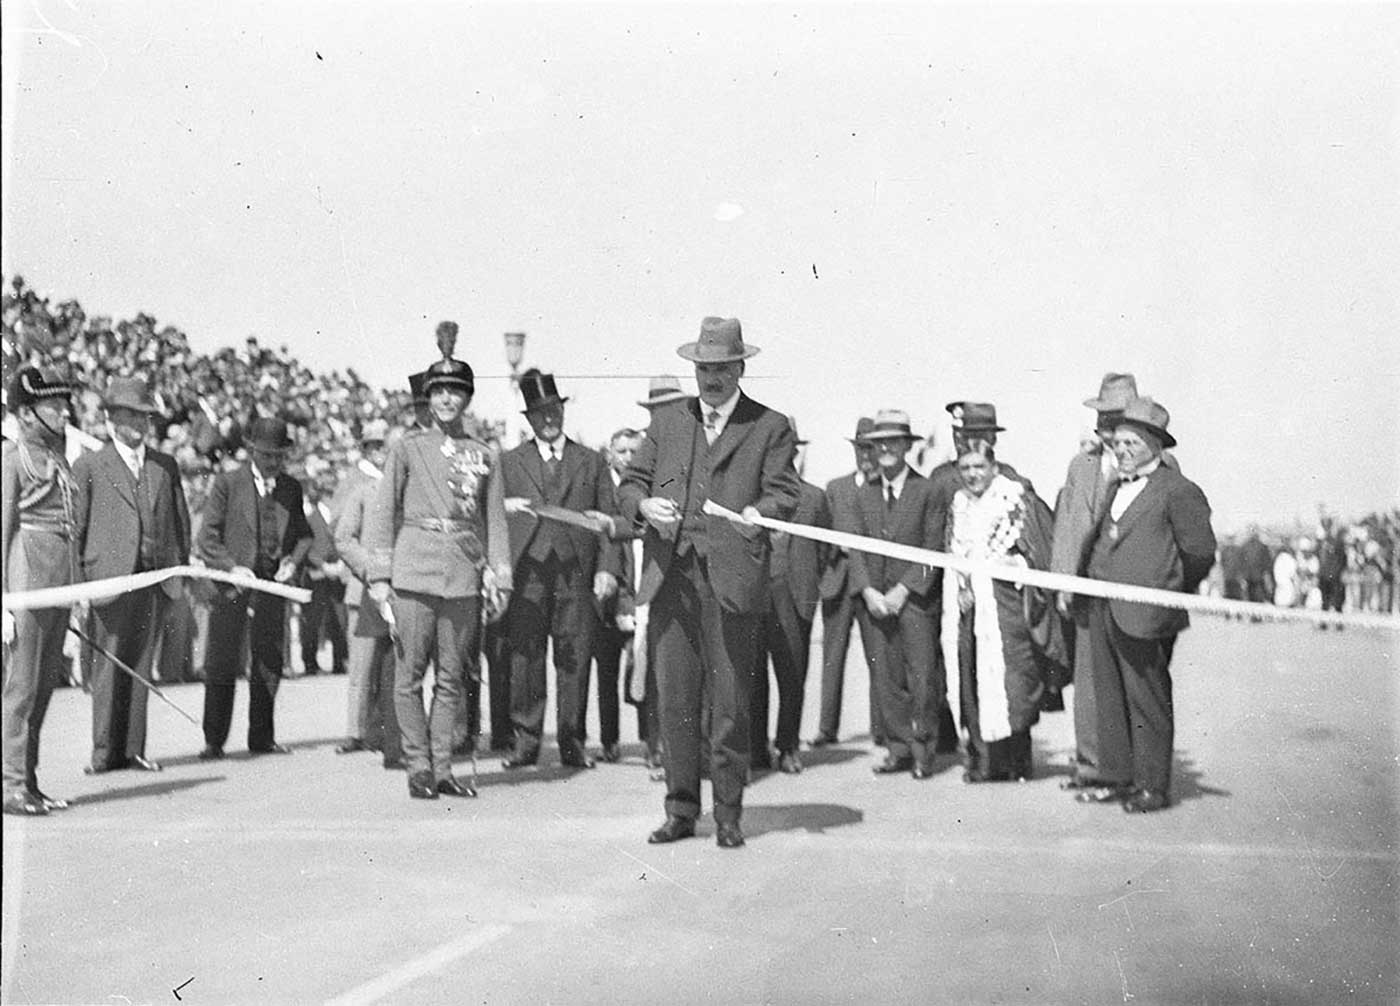 Black and white photo of dignitaries, with one man standing forward to cut a ribbon. - click to view larger image